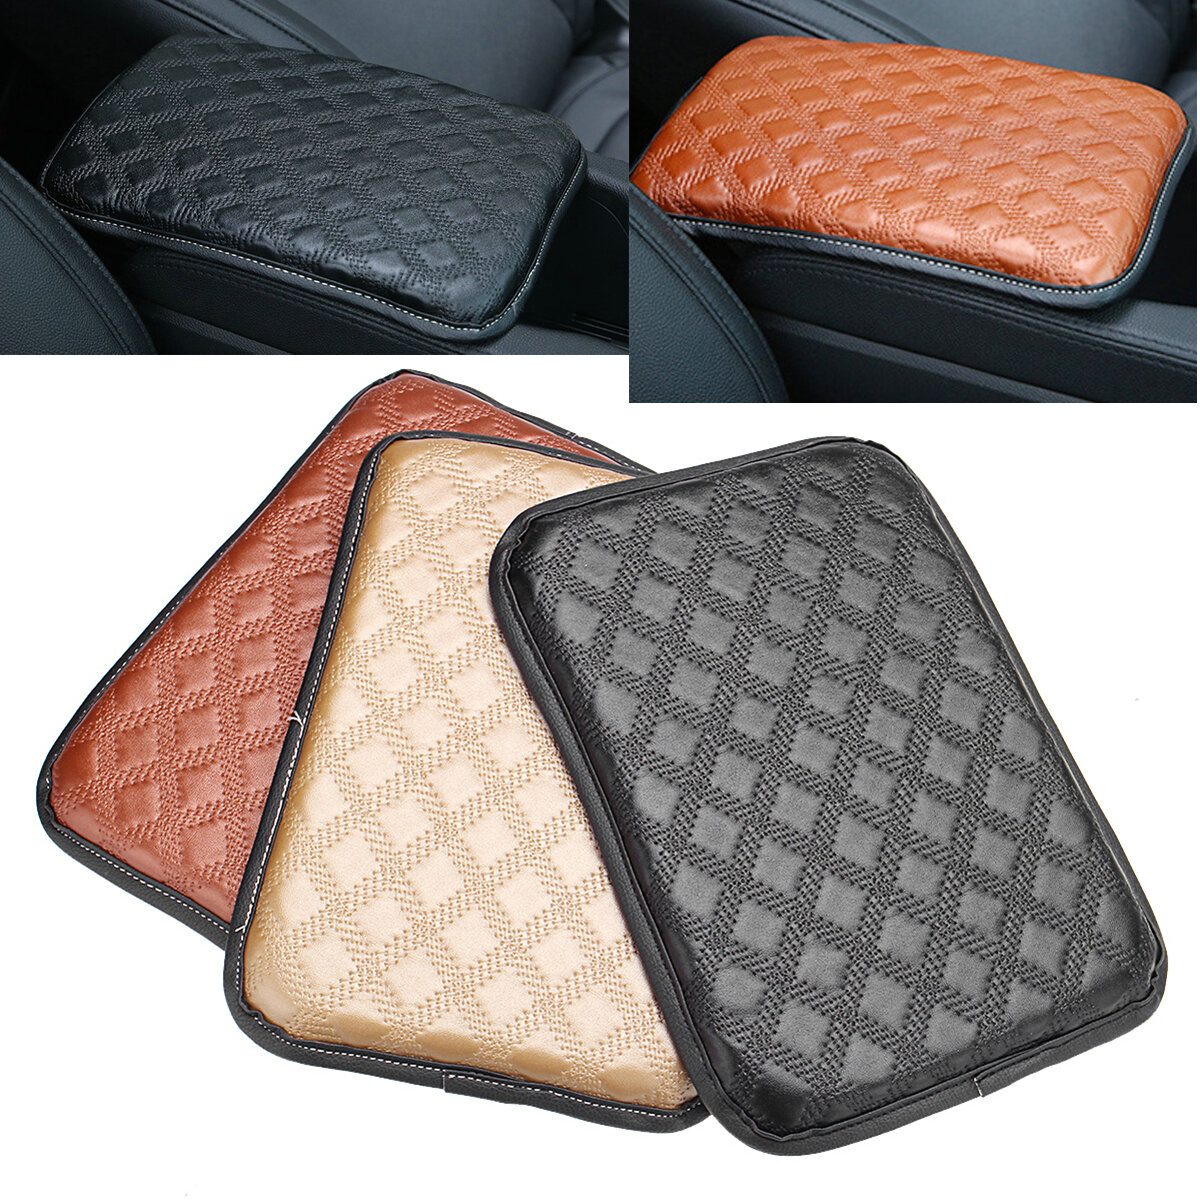 Beige Leather Universal For Car Armrest Pad Cover Auto Center Console Cushion